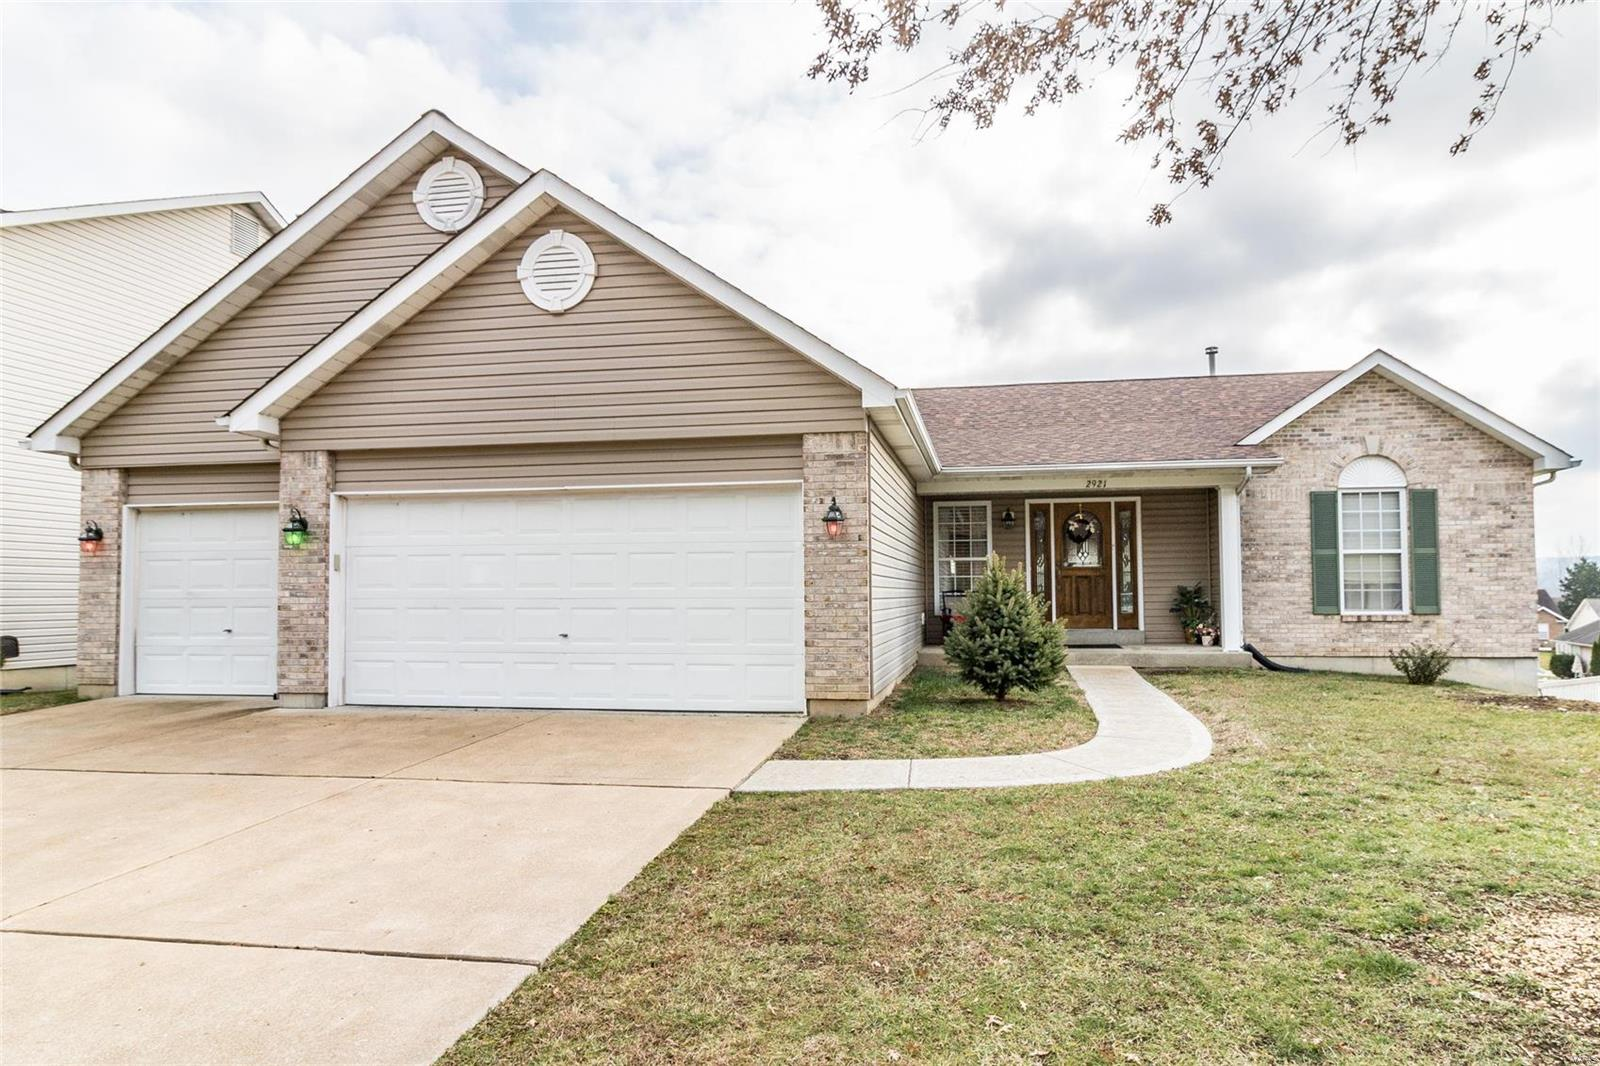 2921 Silverfern Court Property Photo - Imperial, MO real estate listing